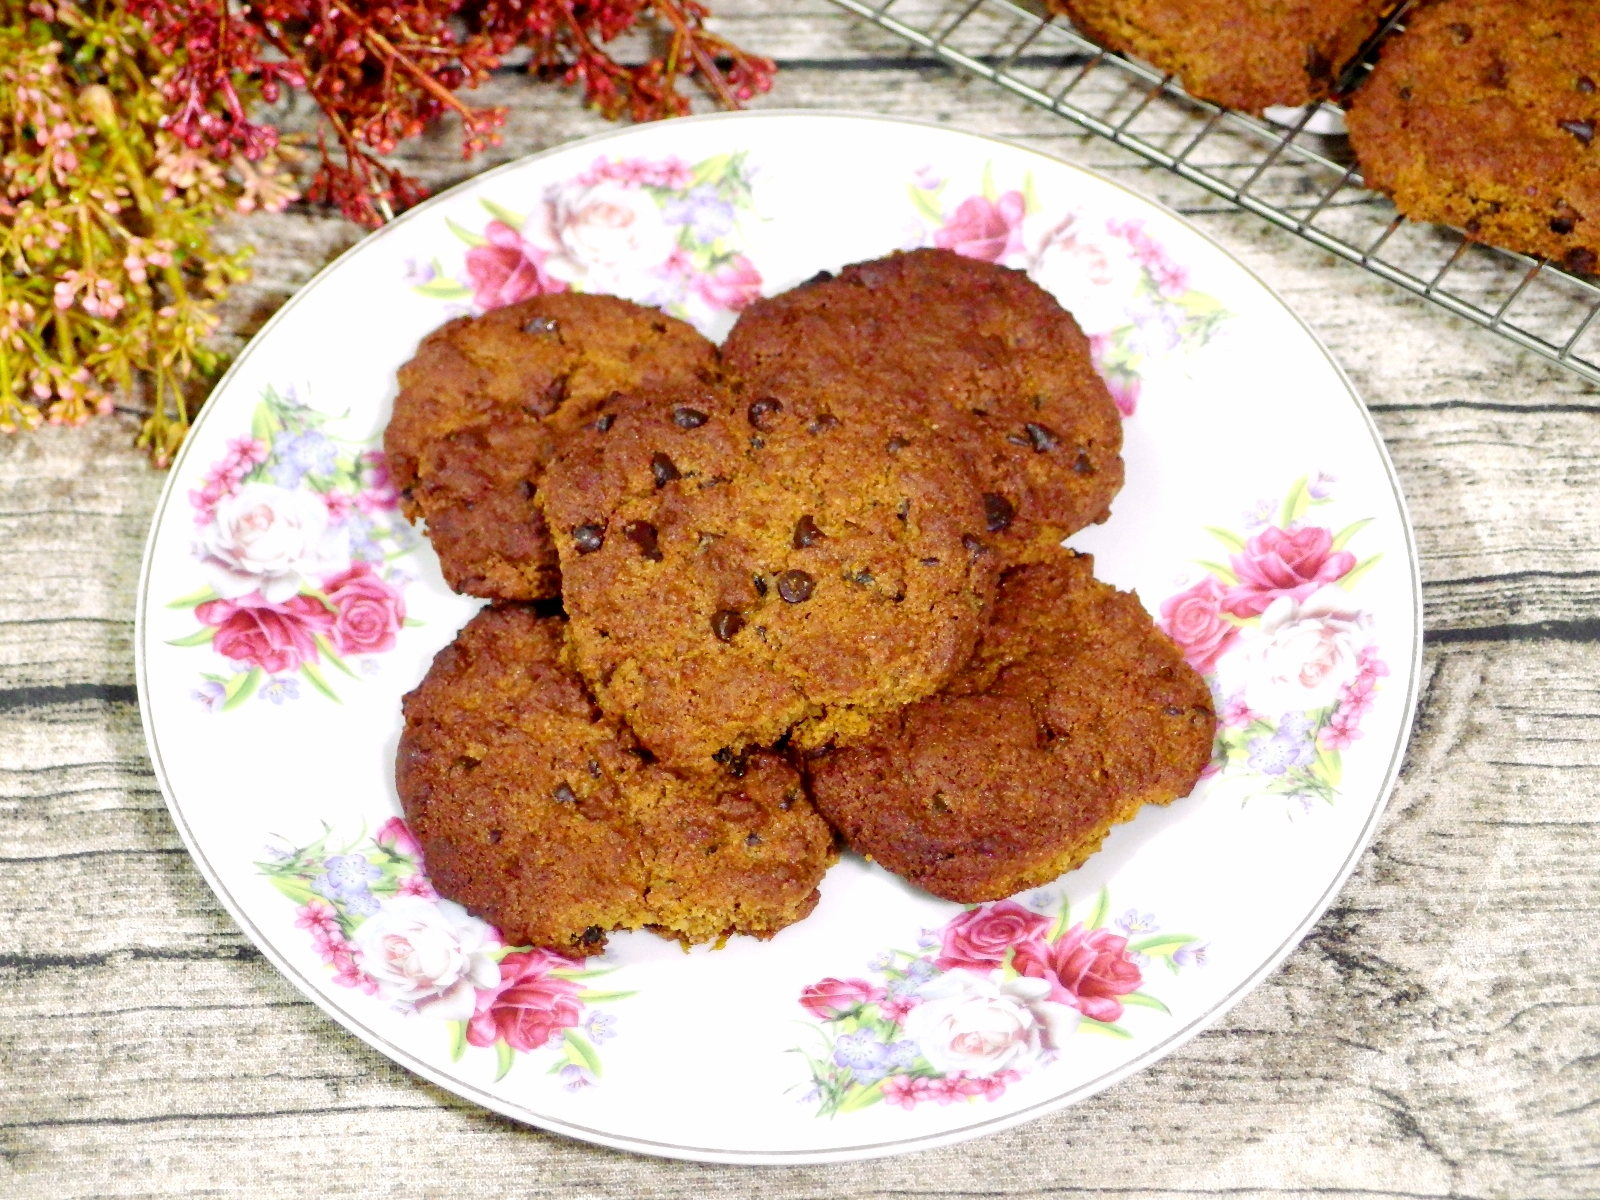 Sea Salt Gula Melaka Chocolate Chip Cookies Recipe